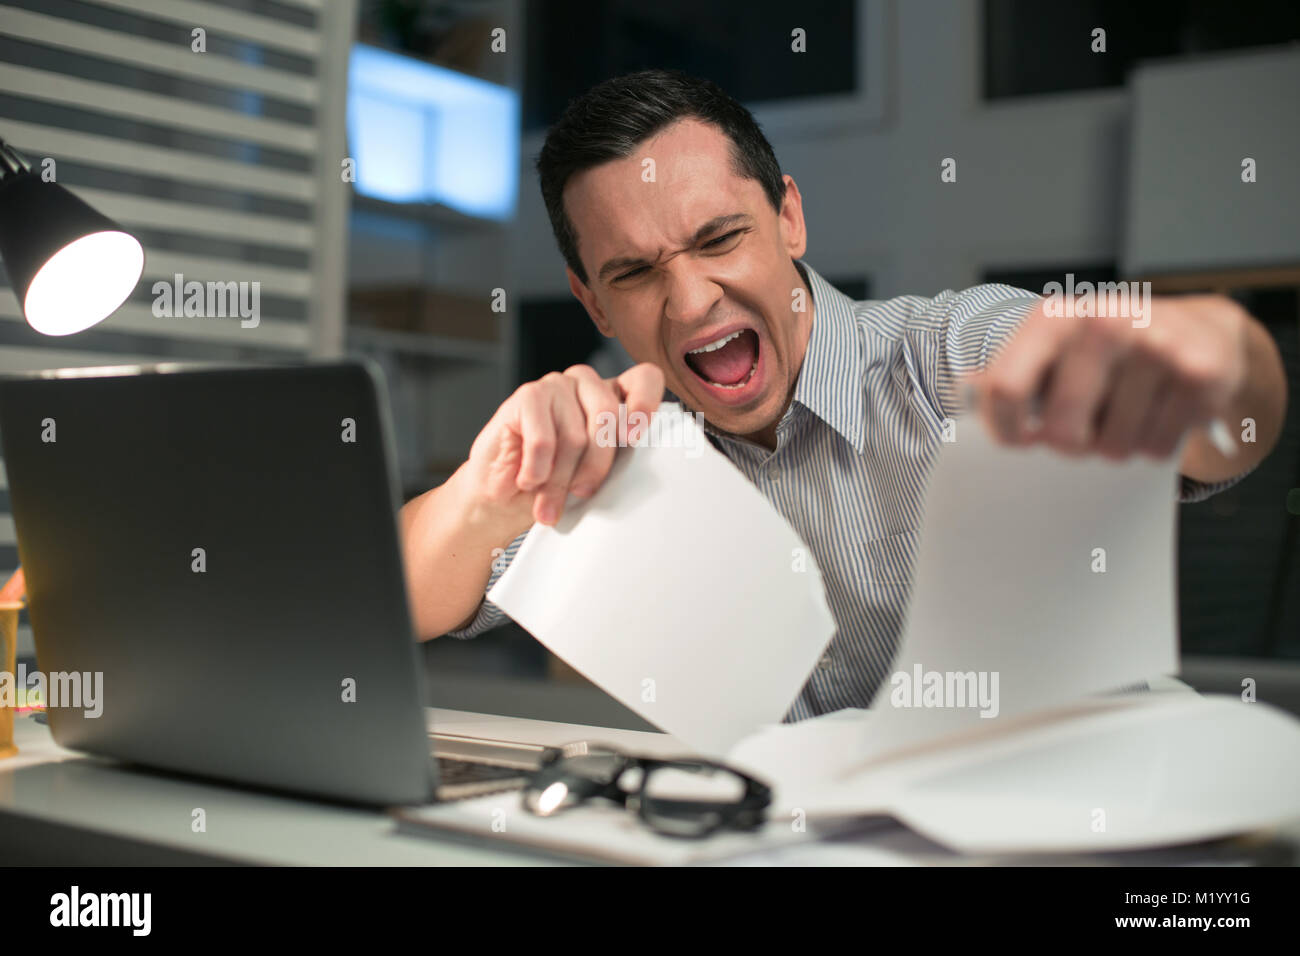 Attractive male employee rending papers - Stock Image